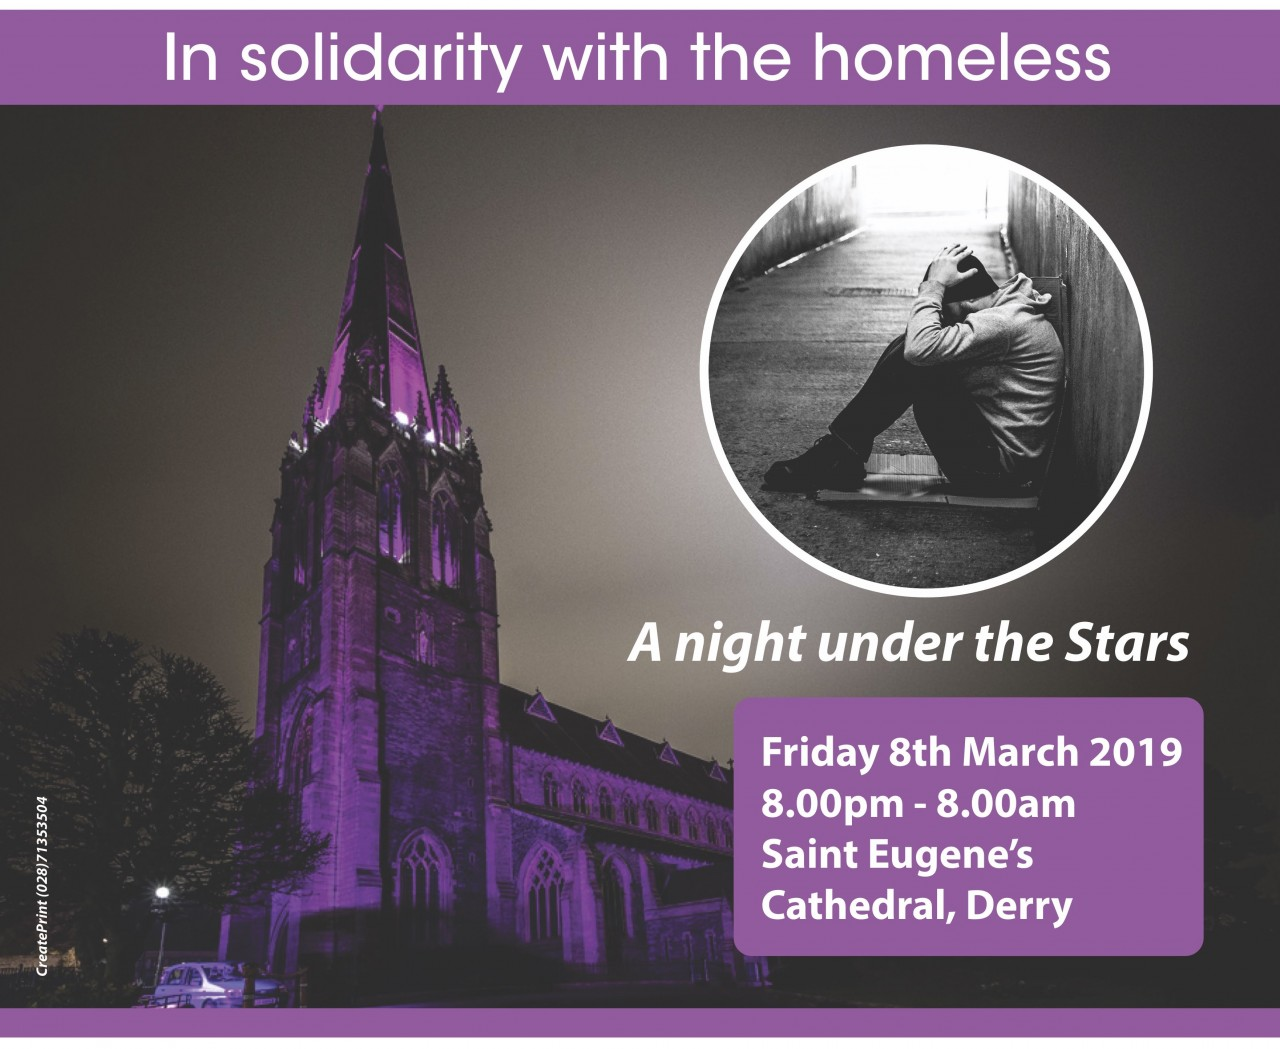 Sleep Out - Stay Awake Event - St Eugene's Cathedral, Derry - 8th March 2019